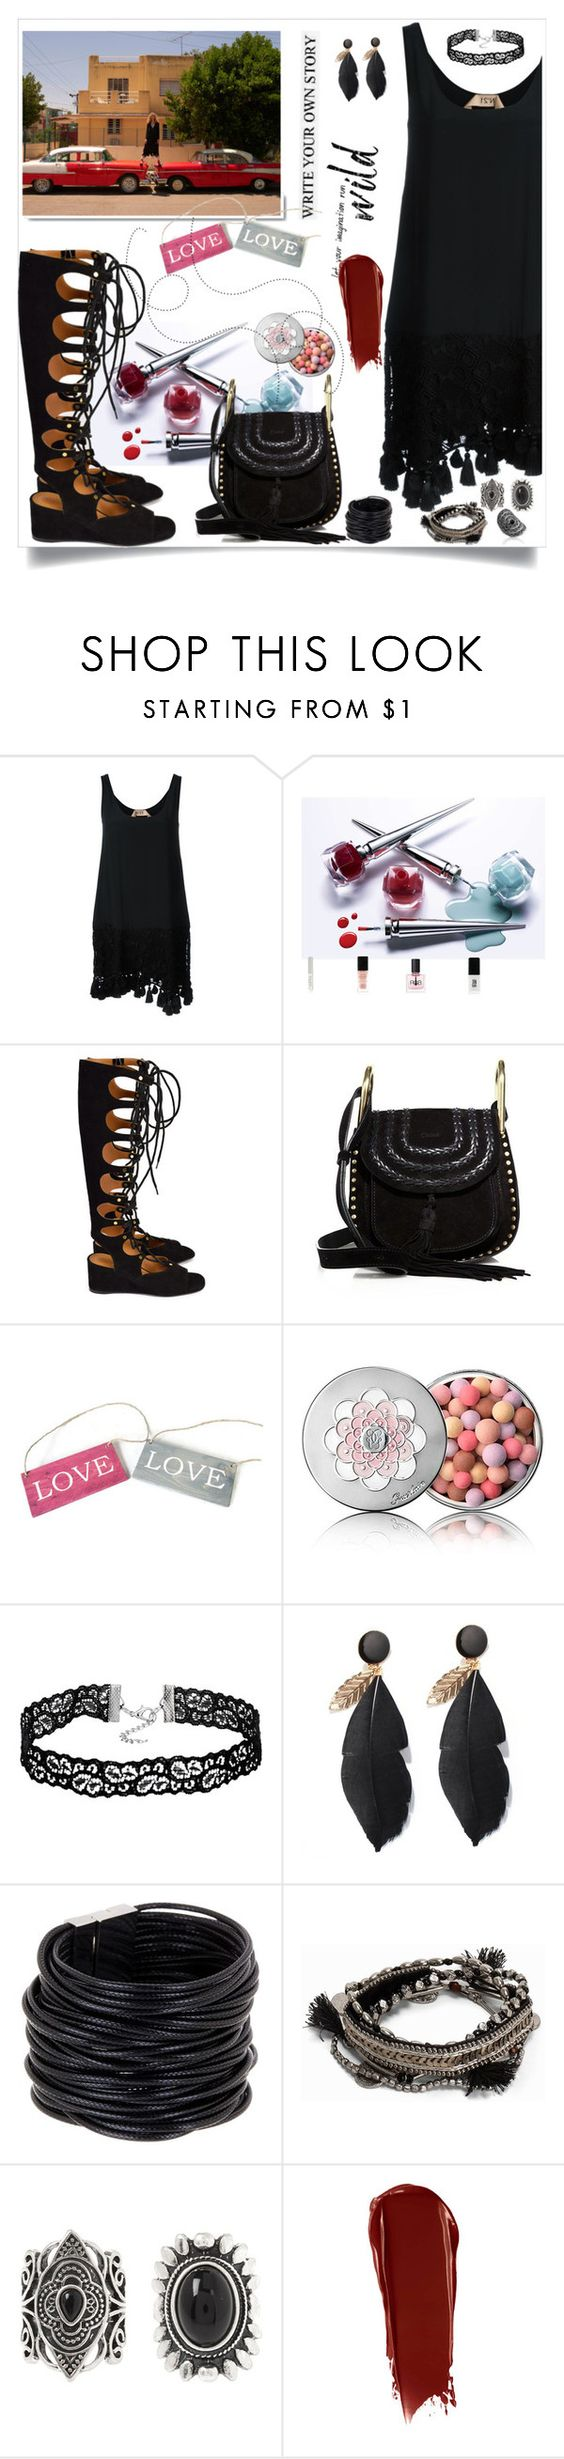 """""""..."""" by hani-bgd ❤ liked on Polyvore featuring White Label, N°21, Chloé, Guerlain, Saachi, Thomas Sabo, Pieces, New Look and NARS Cosmetics"""